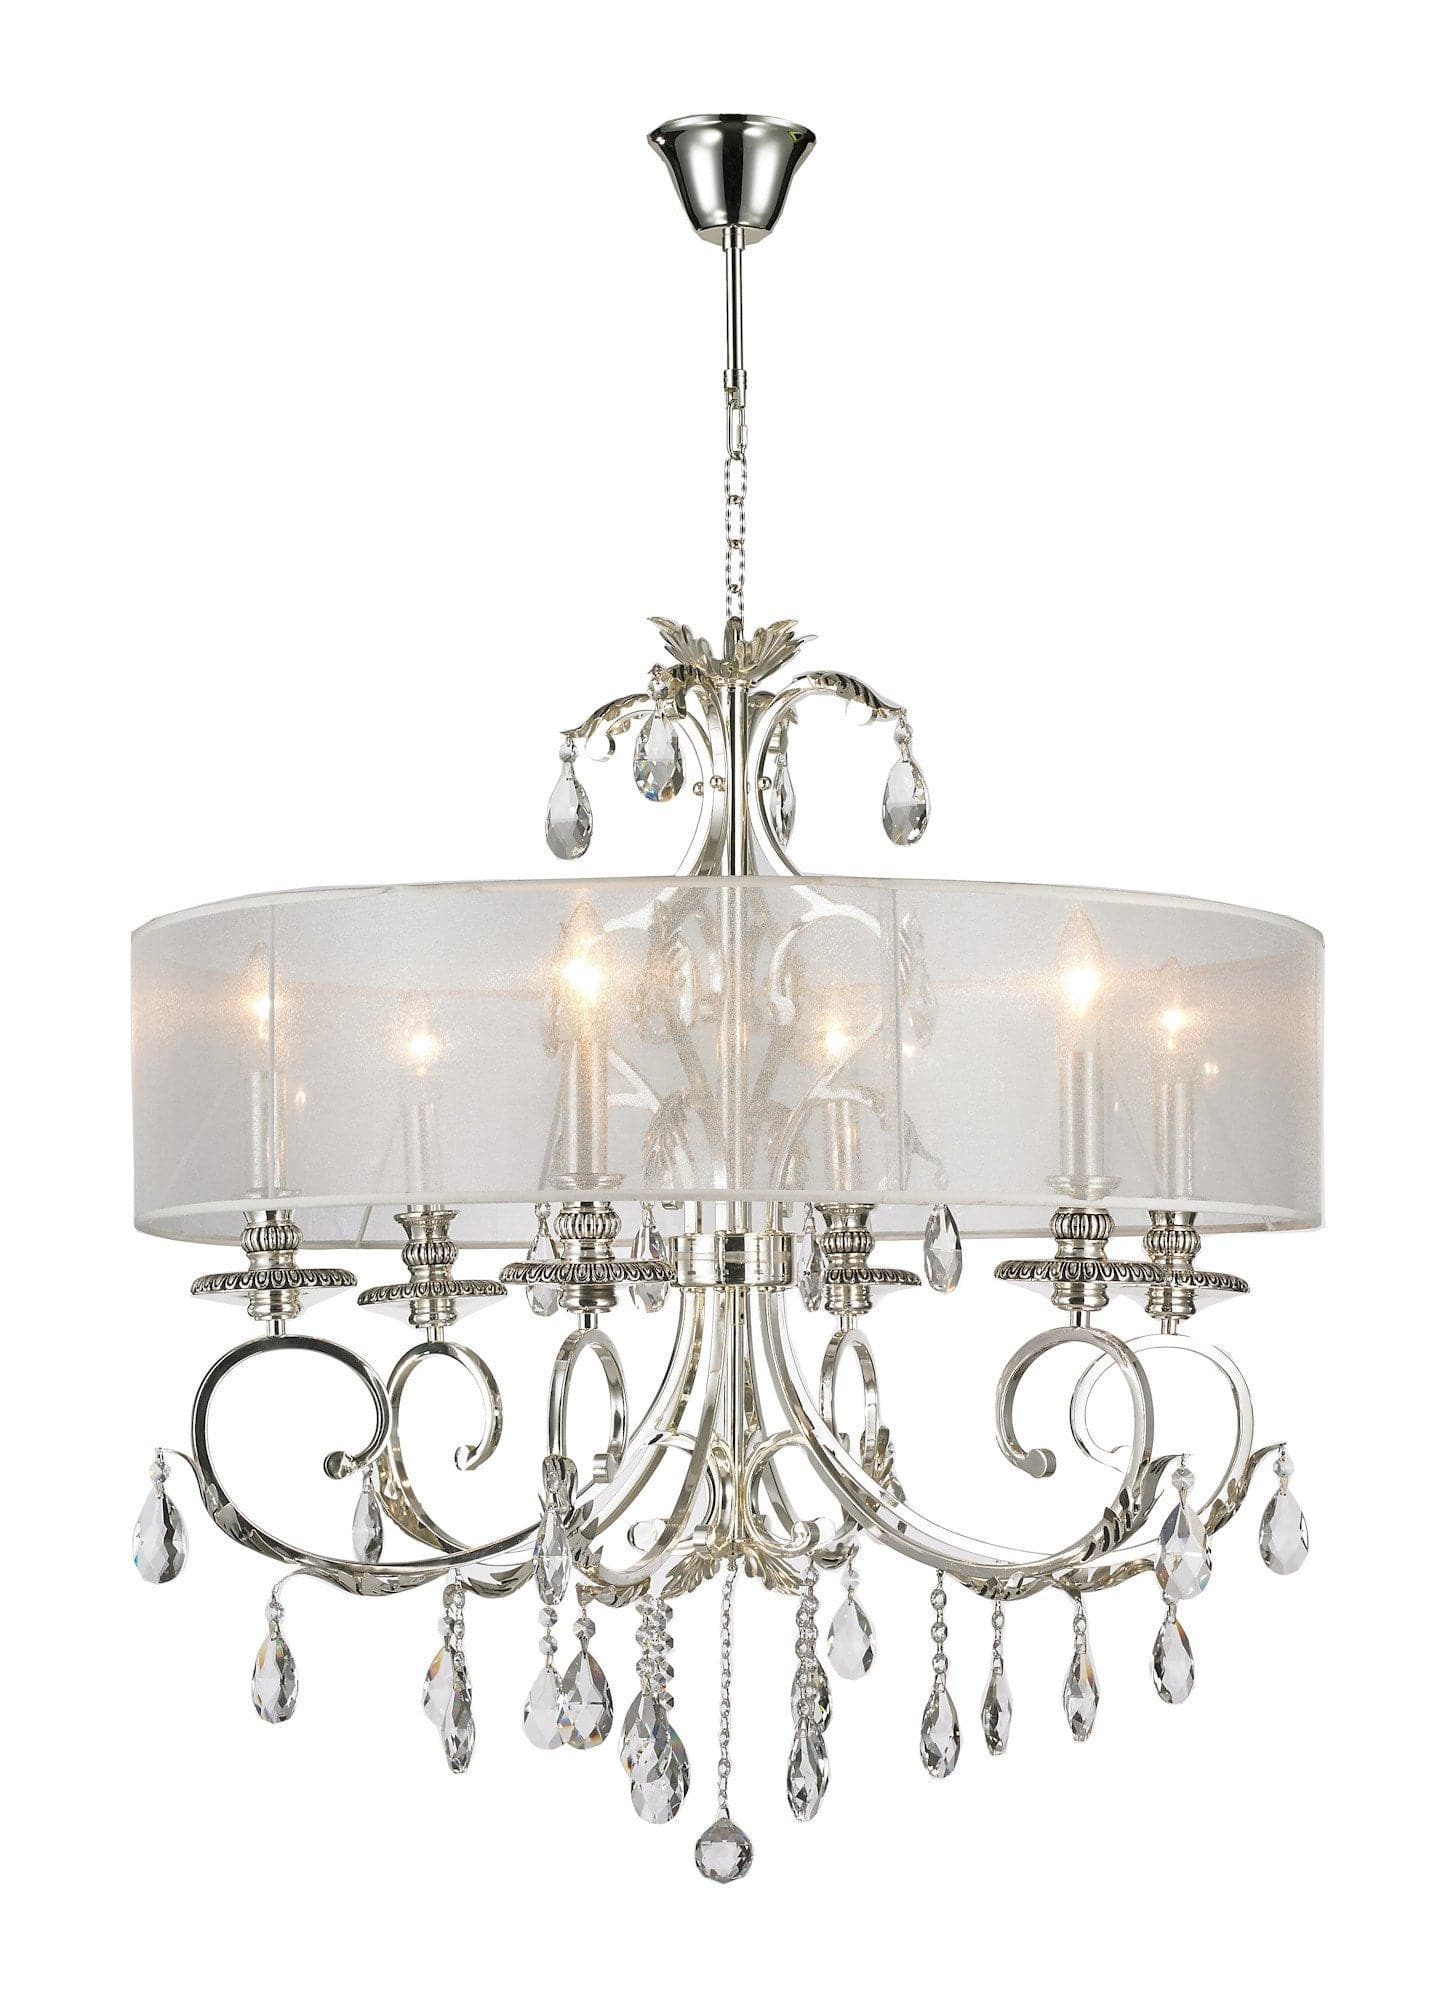 ARIA Hampton 6 Arm Chandelier Silver Plated Orb Outer Shade